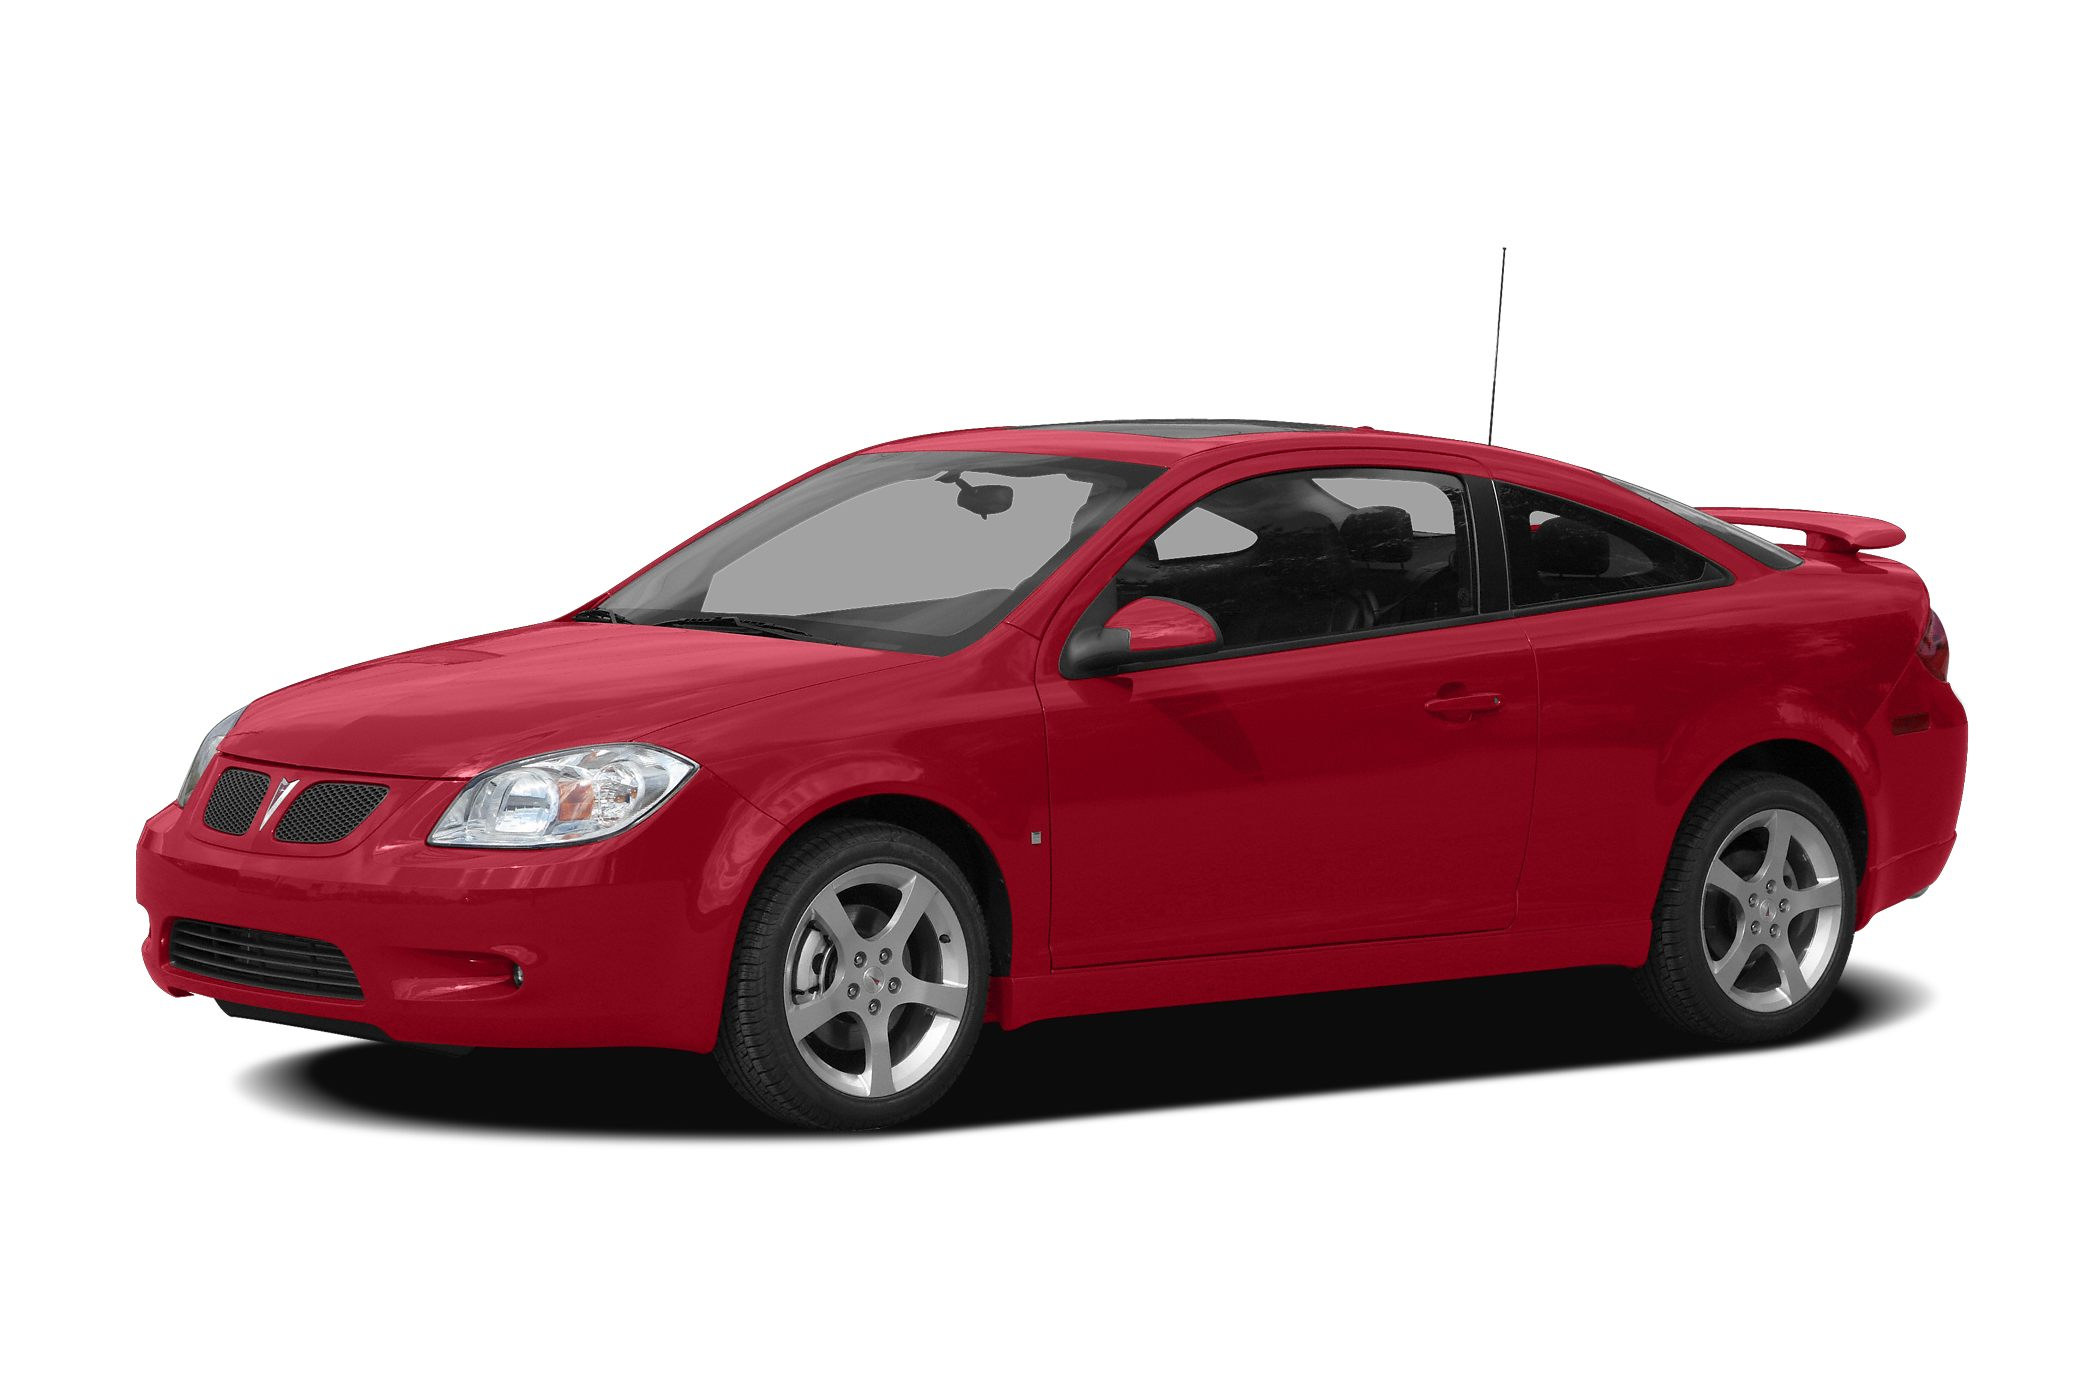 2008 Pontiac G5 Coupe for sale in Flint for $9,800 with 46,107 miles.